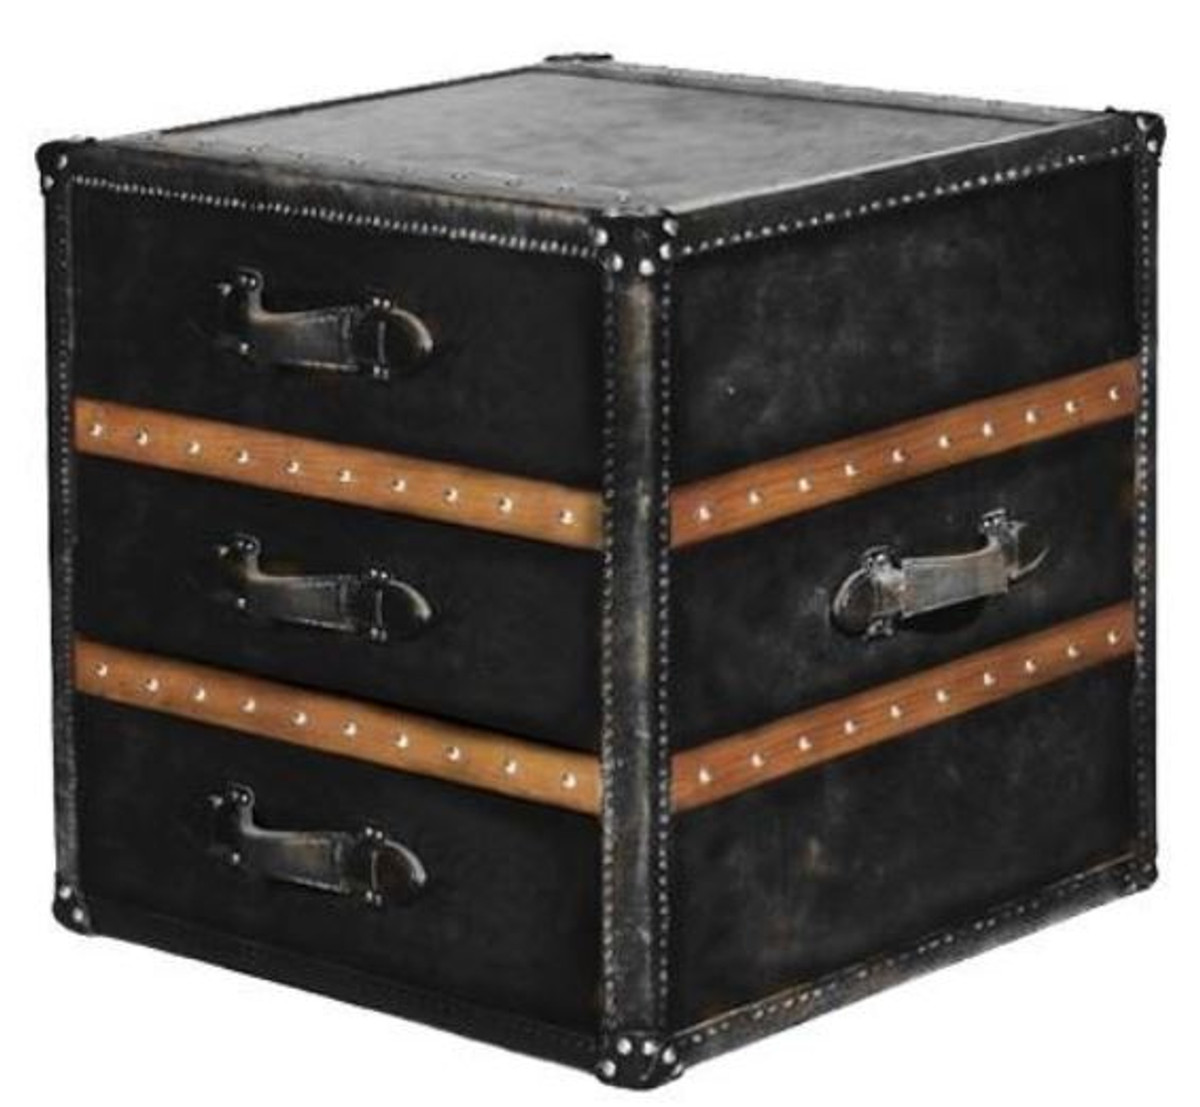 casa padrino luxury side table with 2 drawers black brown 52 x 48 x h 50 cm handmade side table in suitcase look